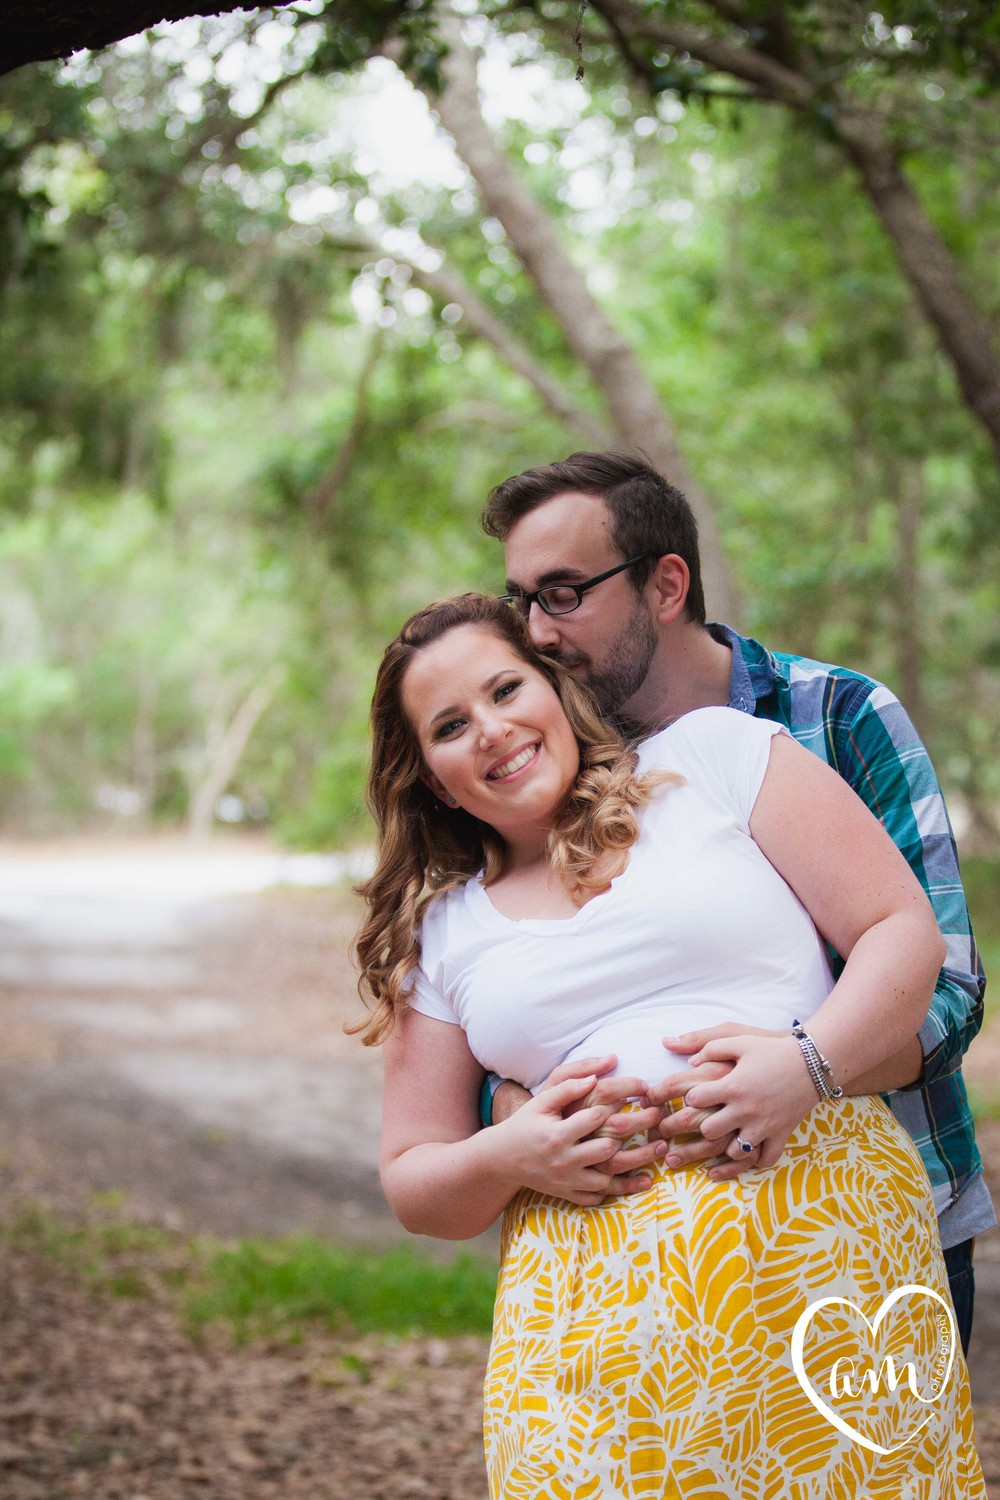 Fun filled engagement photos taken by Orlando destination wedding photographer